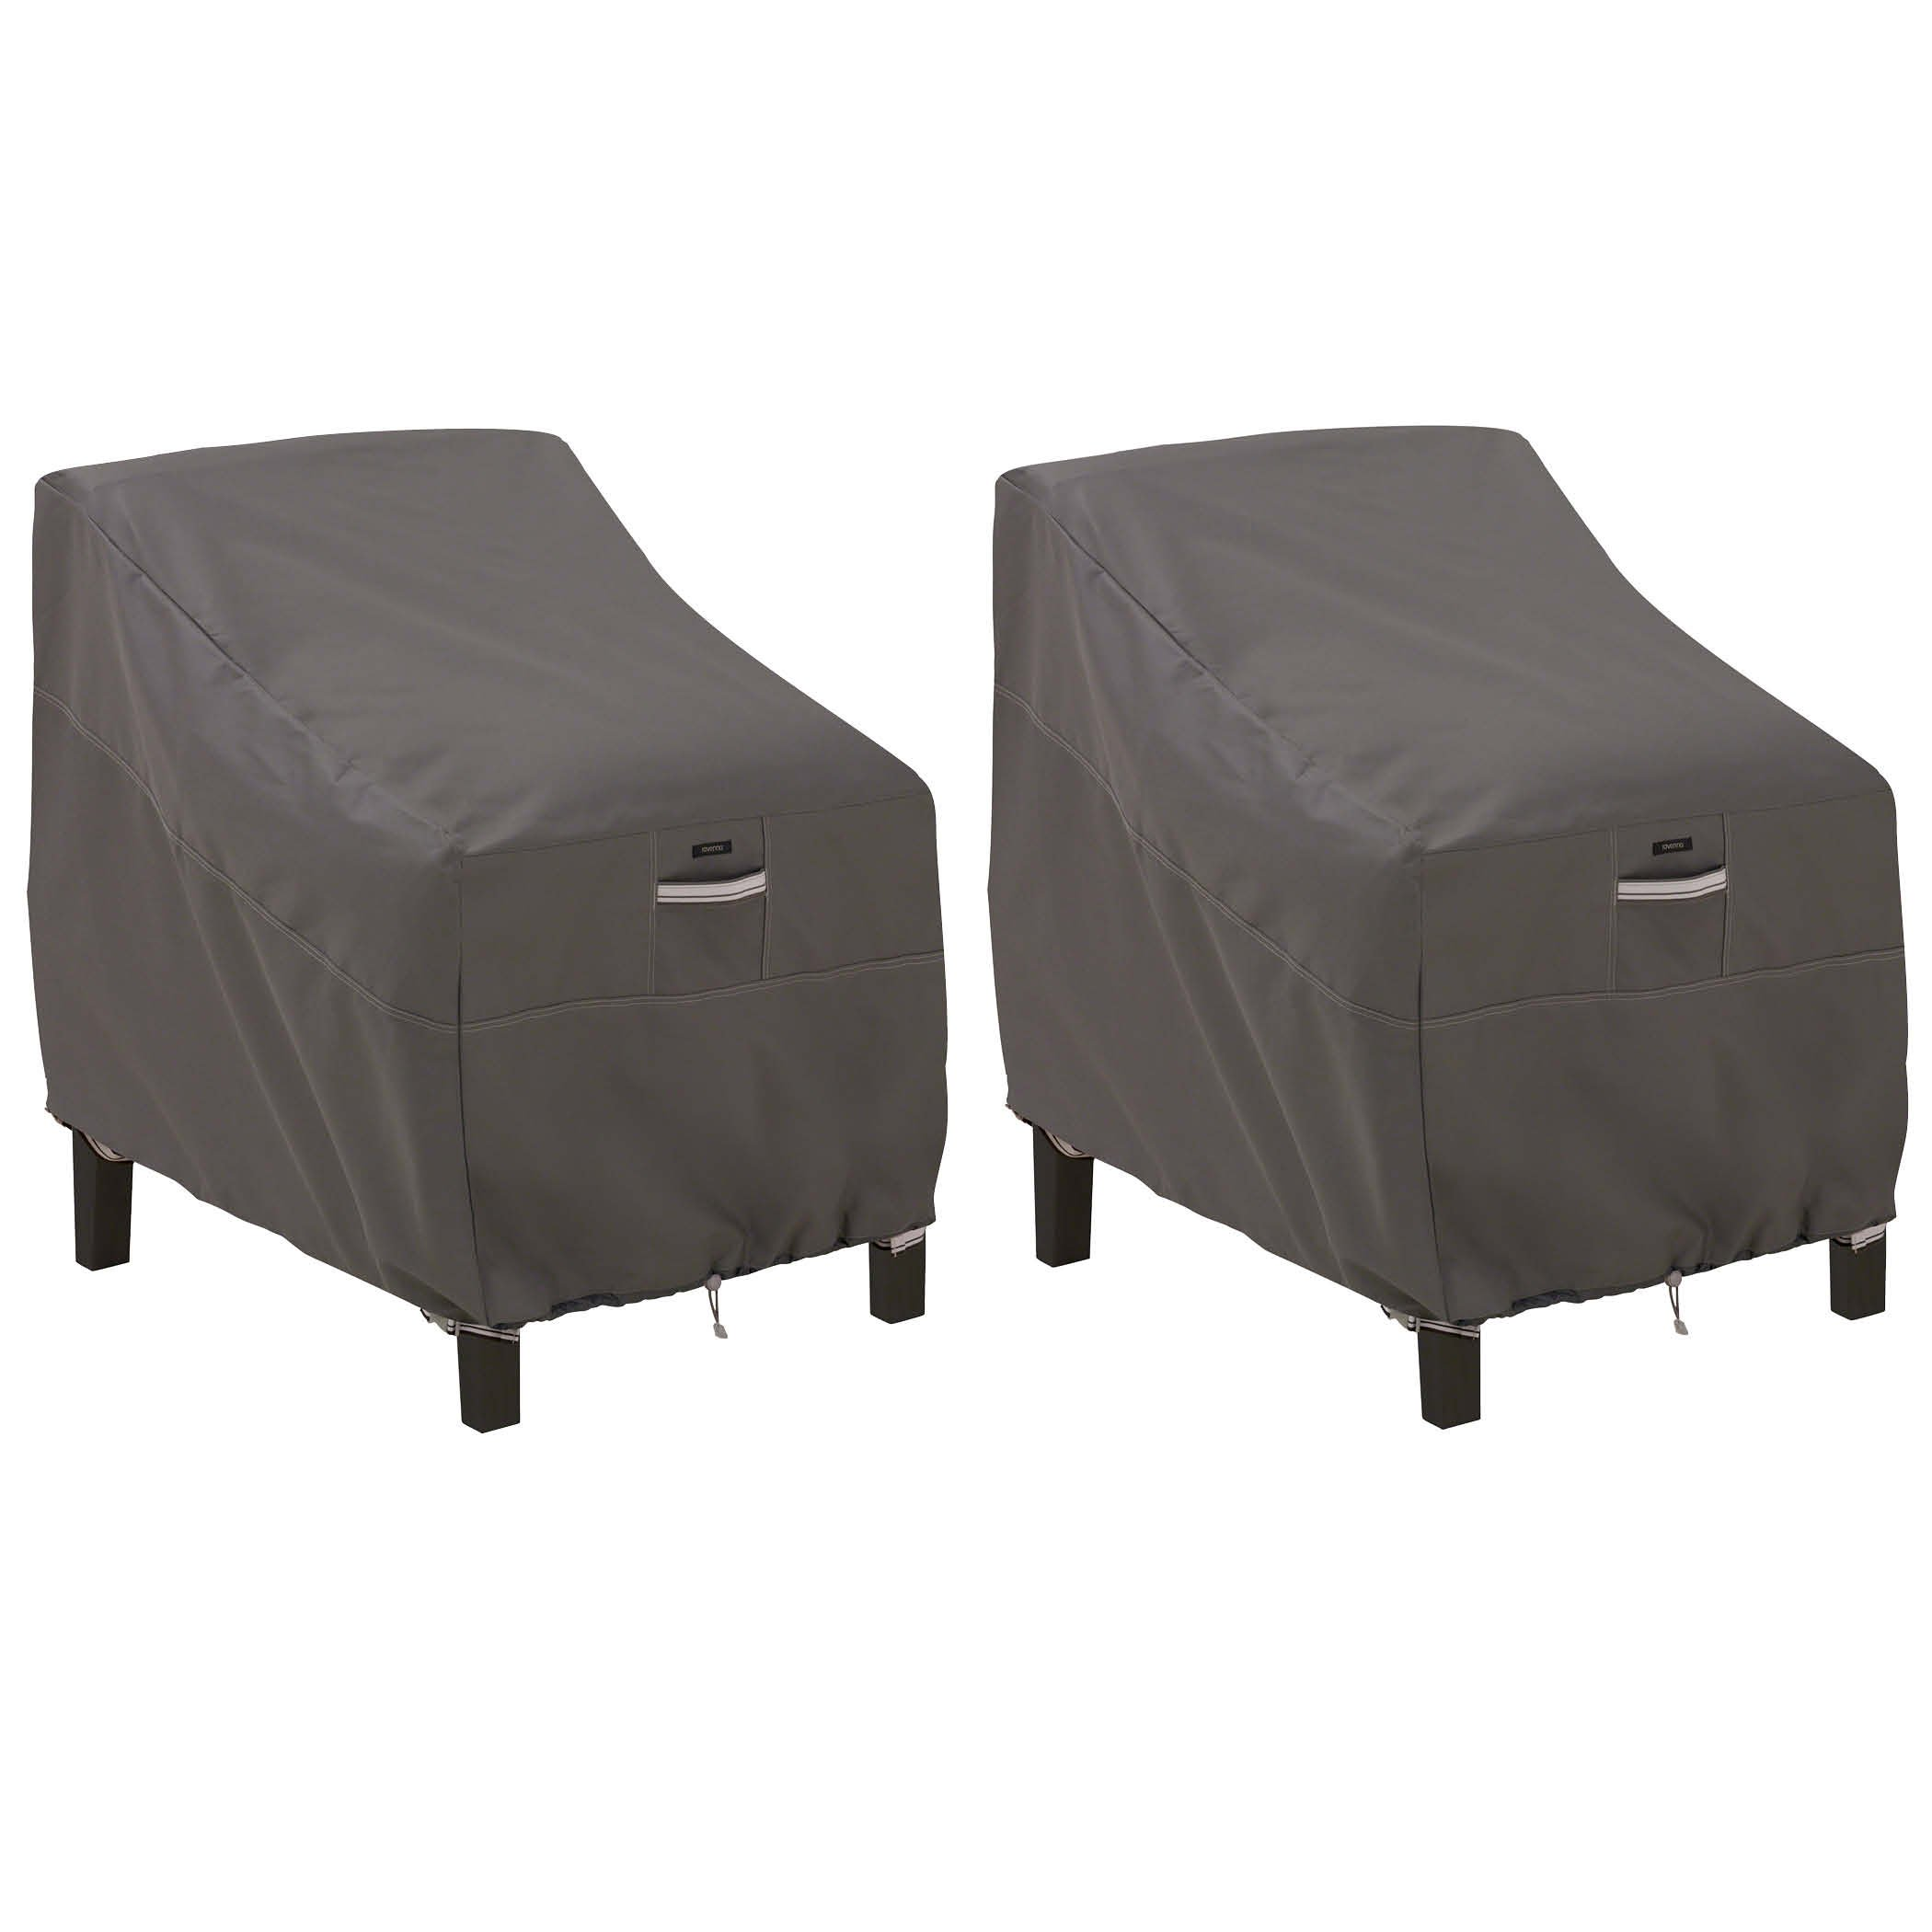 Classic Accessories 55-422-015101-2PK Ravenna Deep Seated Patio Lounge Chair Cover (2-Pack)